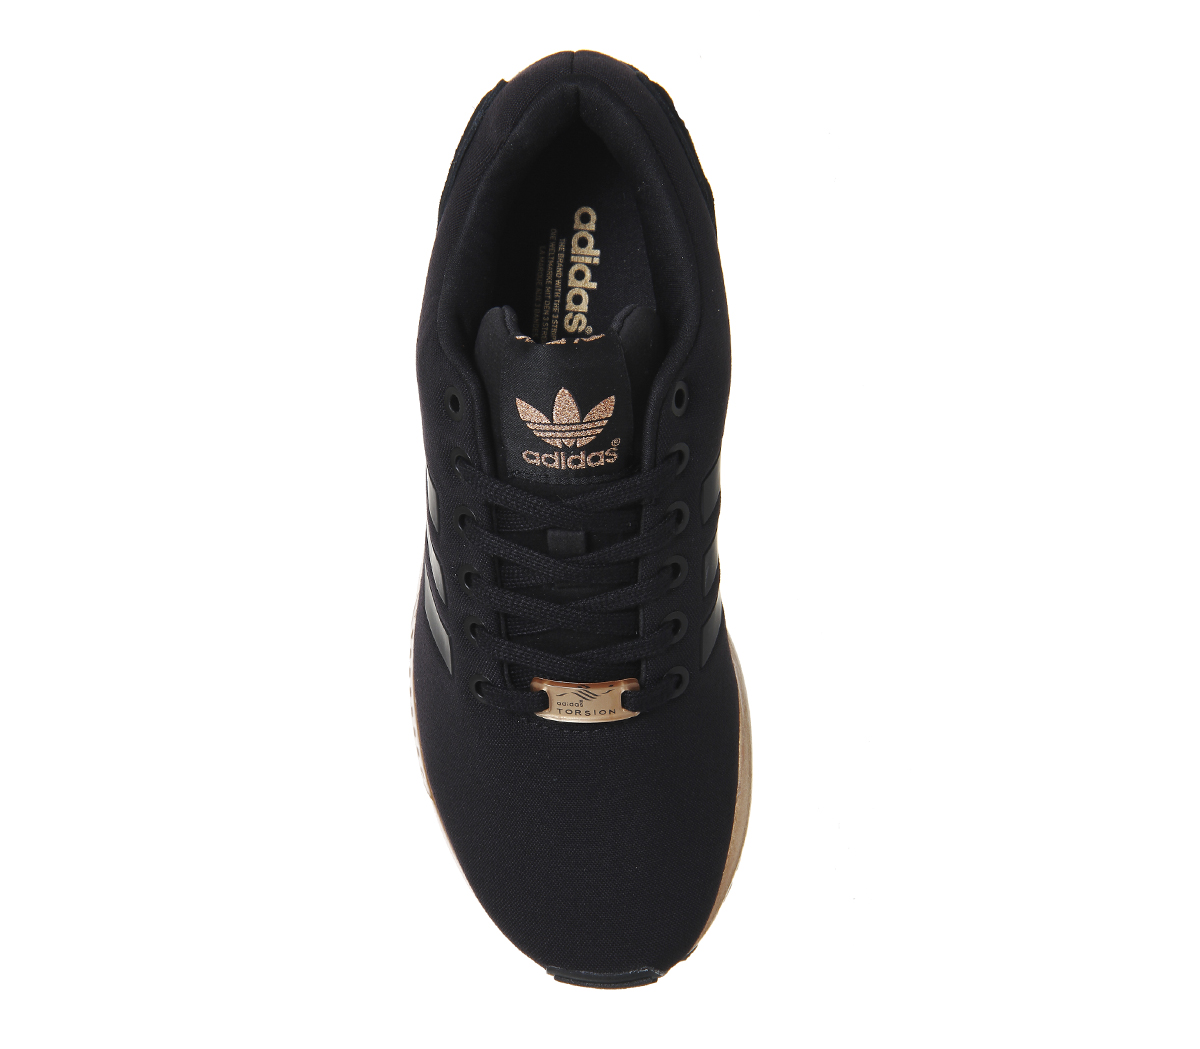 cheap adidas zx flux mujeres negro and rose oro 56572 ee9a5